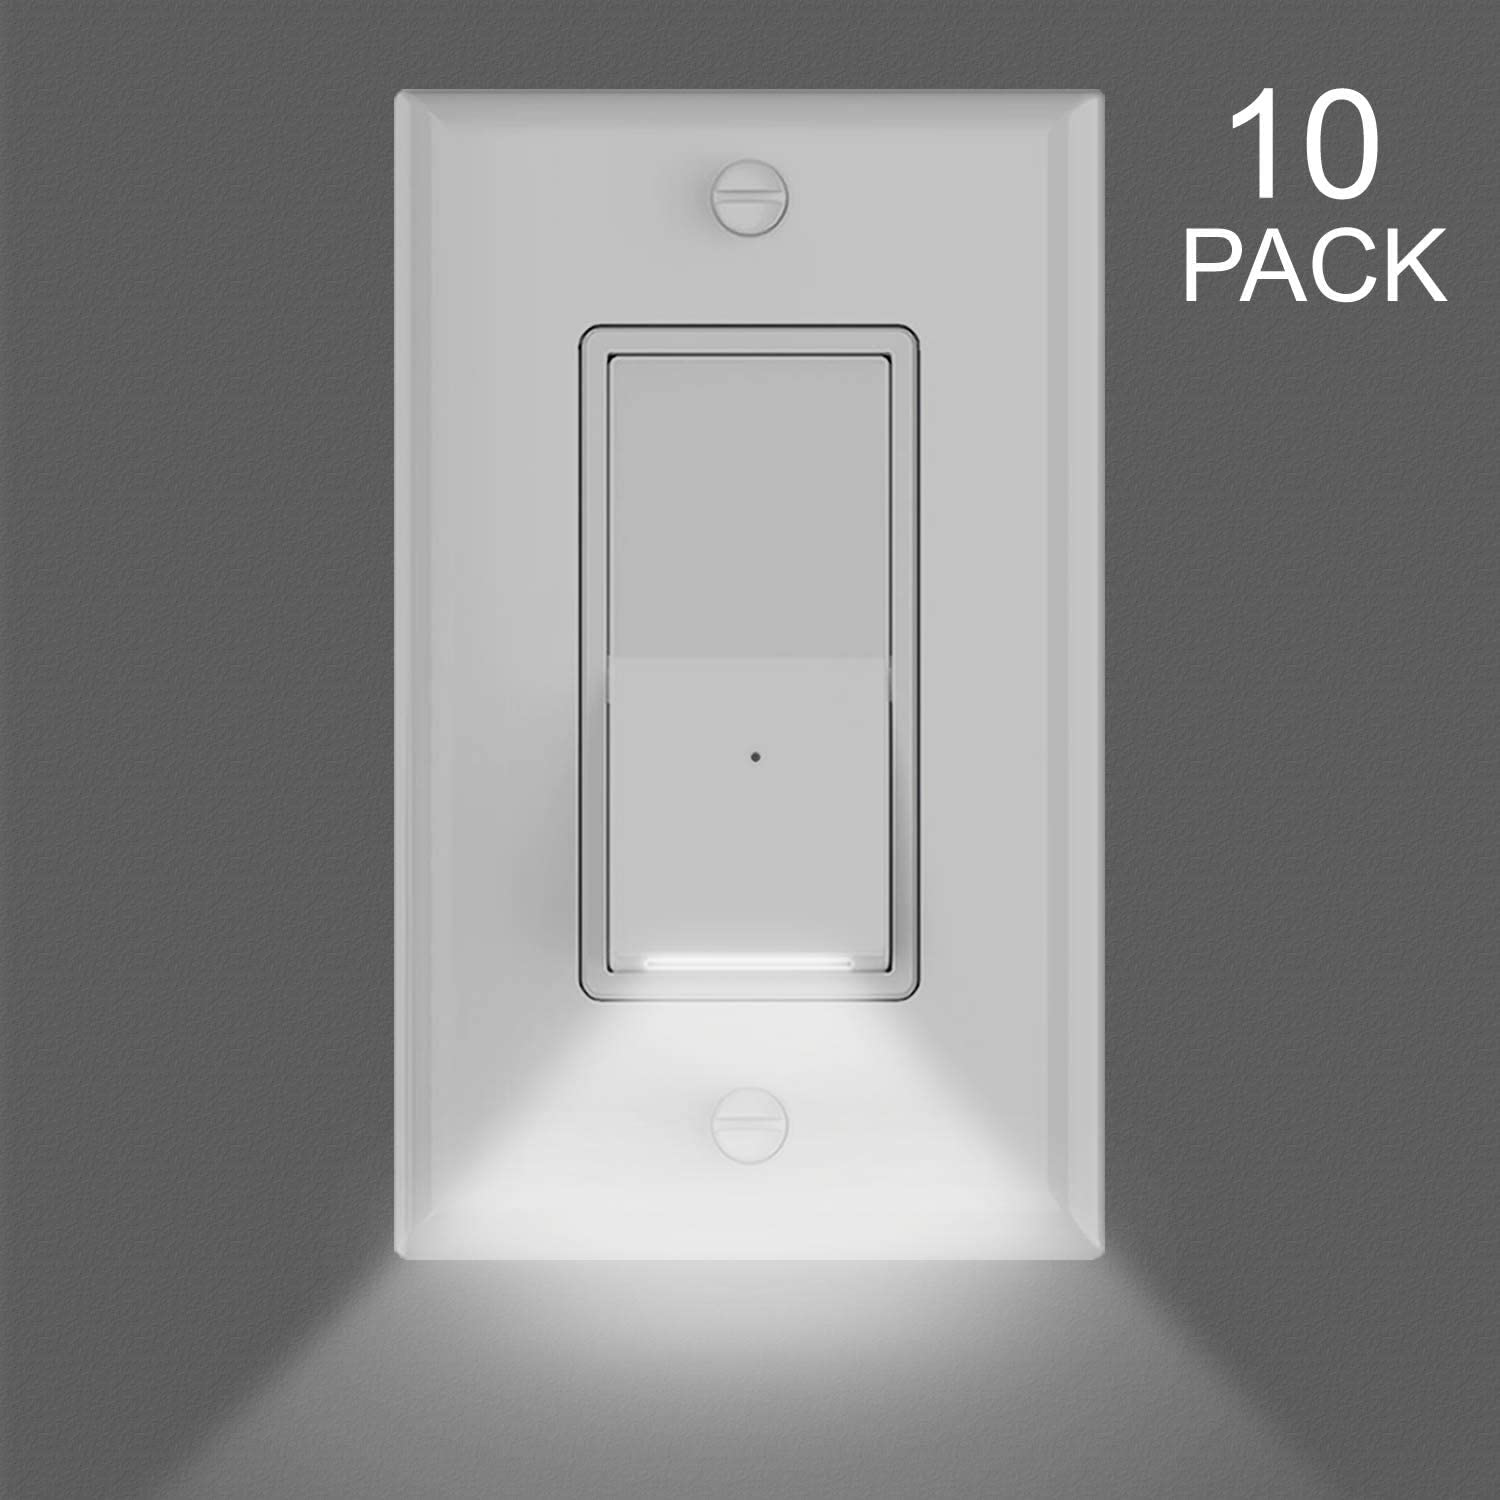 10Pack Child Safe Home Wall Decor Light Switch with LED Night Lights,Electrical Switch with Guidelight,Single Pole,3 Wire,120VAC,15A,On/Off Decorator Rocker Paddle Interrupter,Dayligh White LED